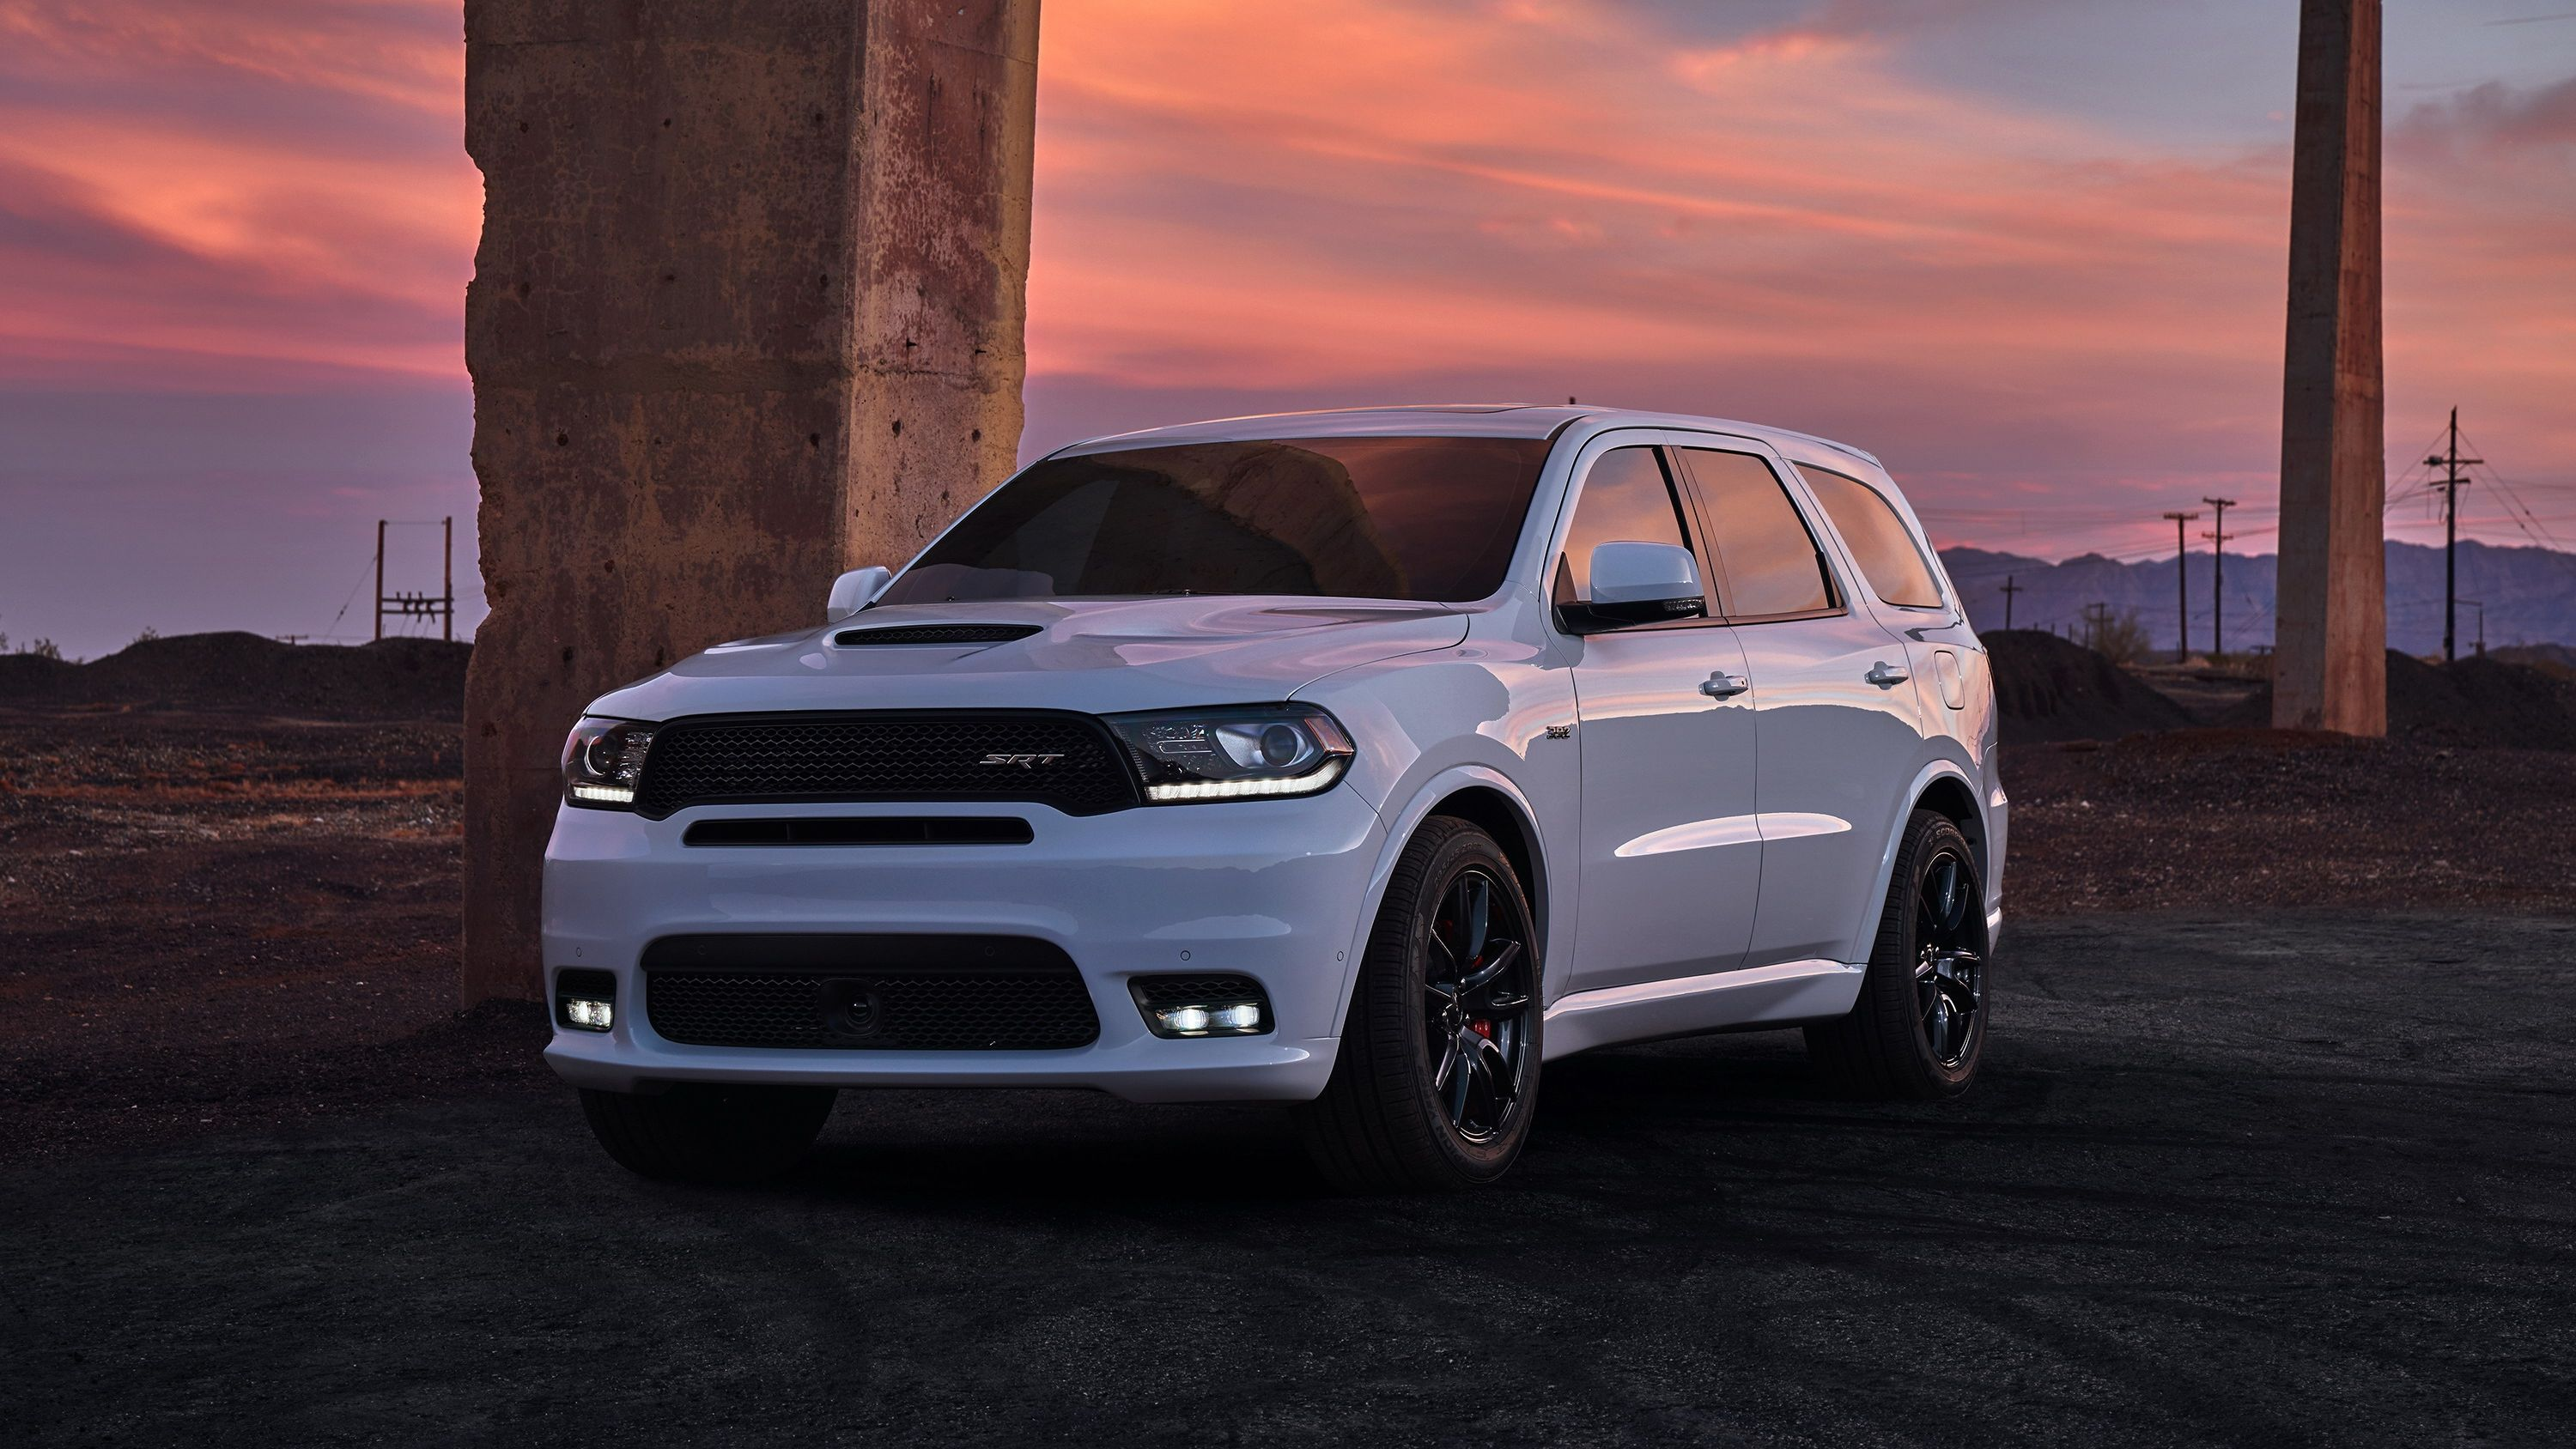 Dodge Durango Wallpapers Top Free Dodge Durango Backgrounds Wallpaperaccess